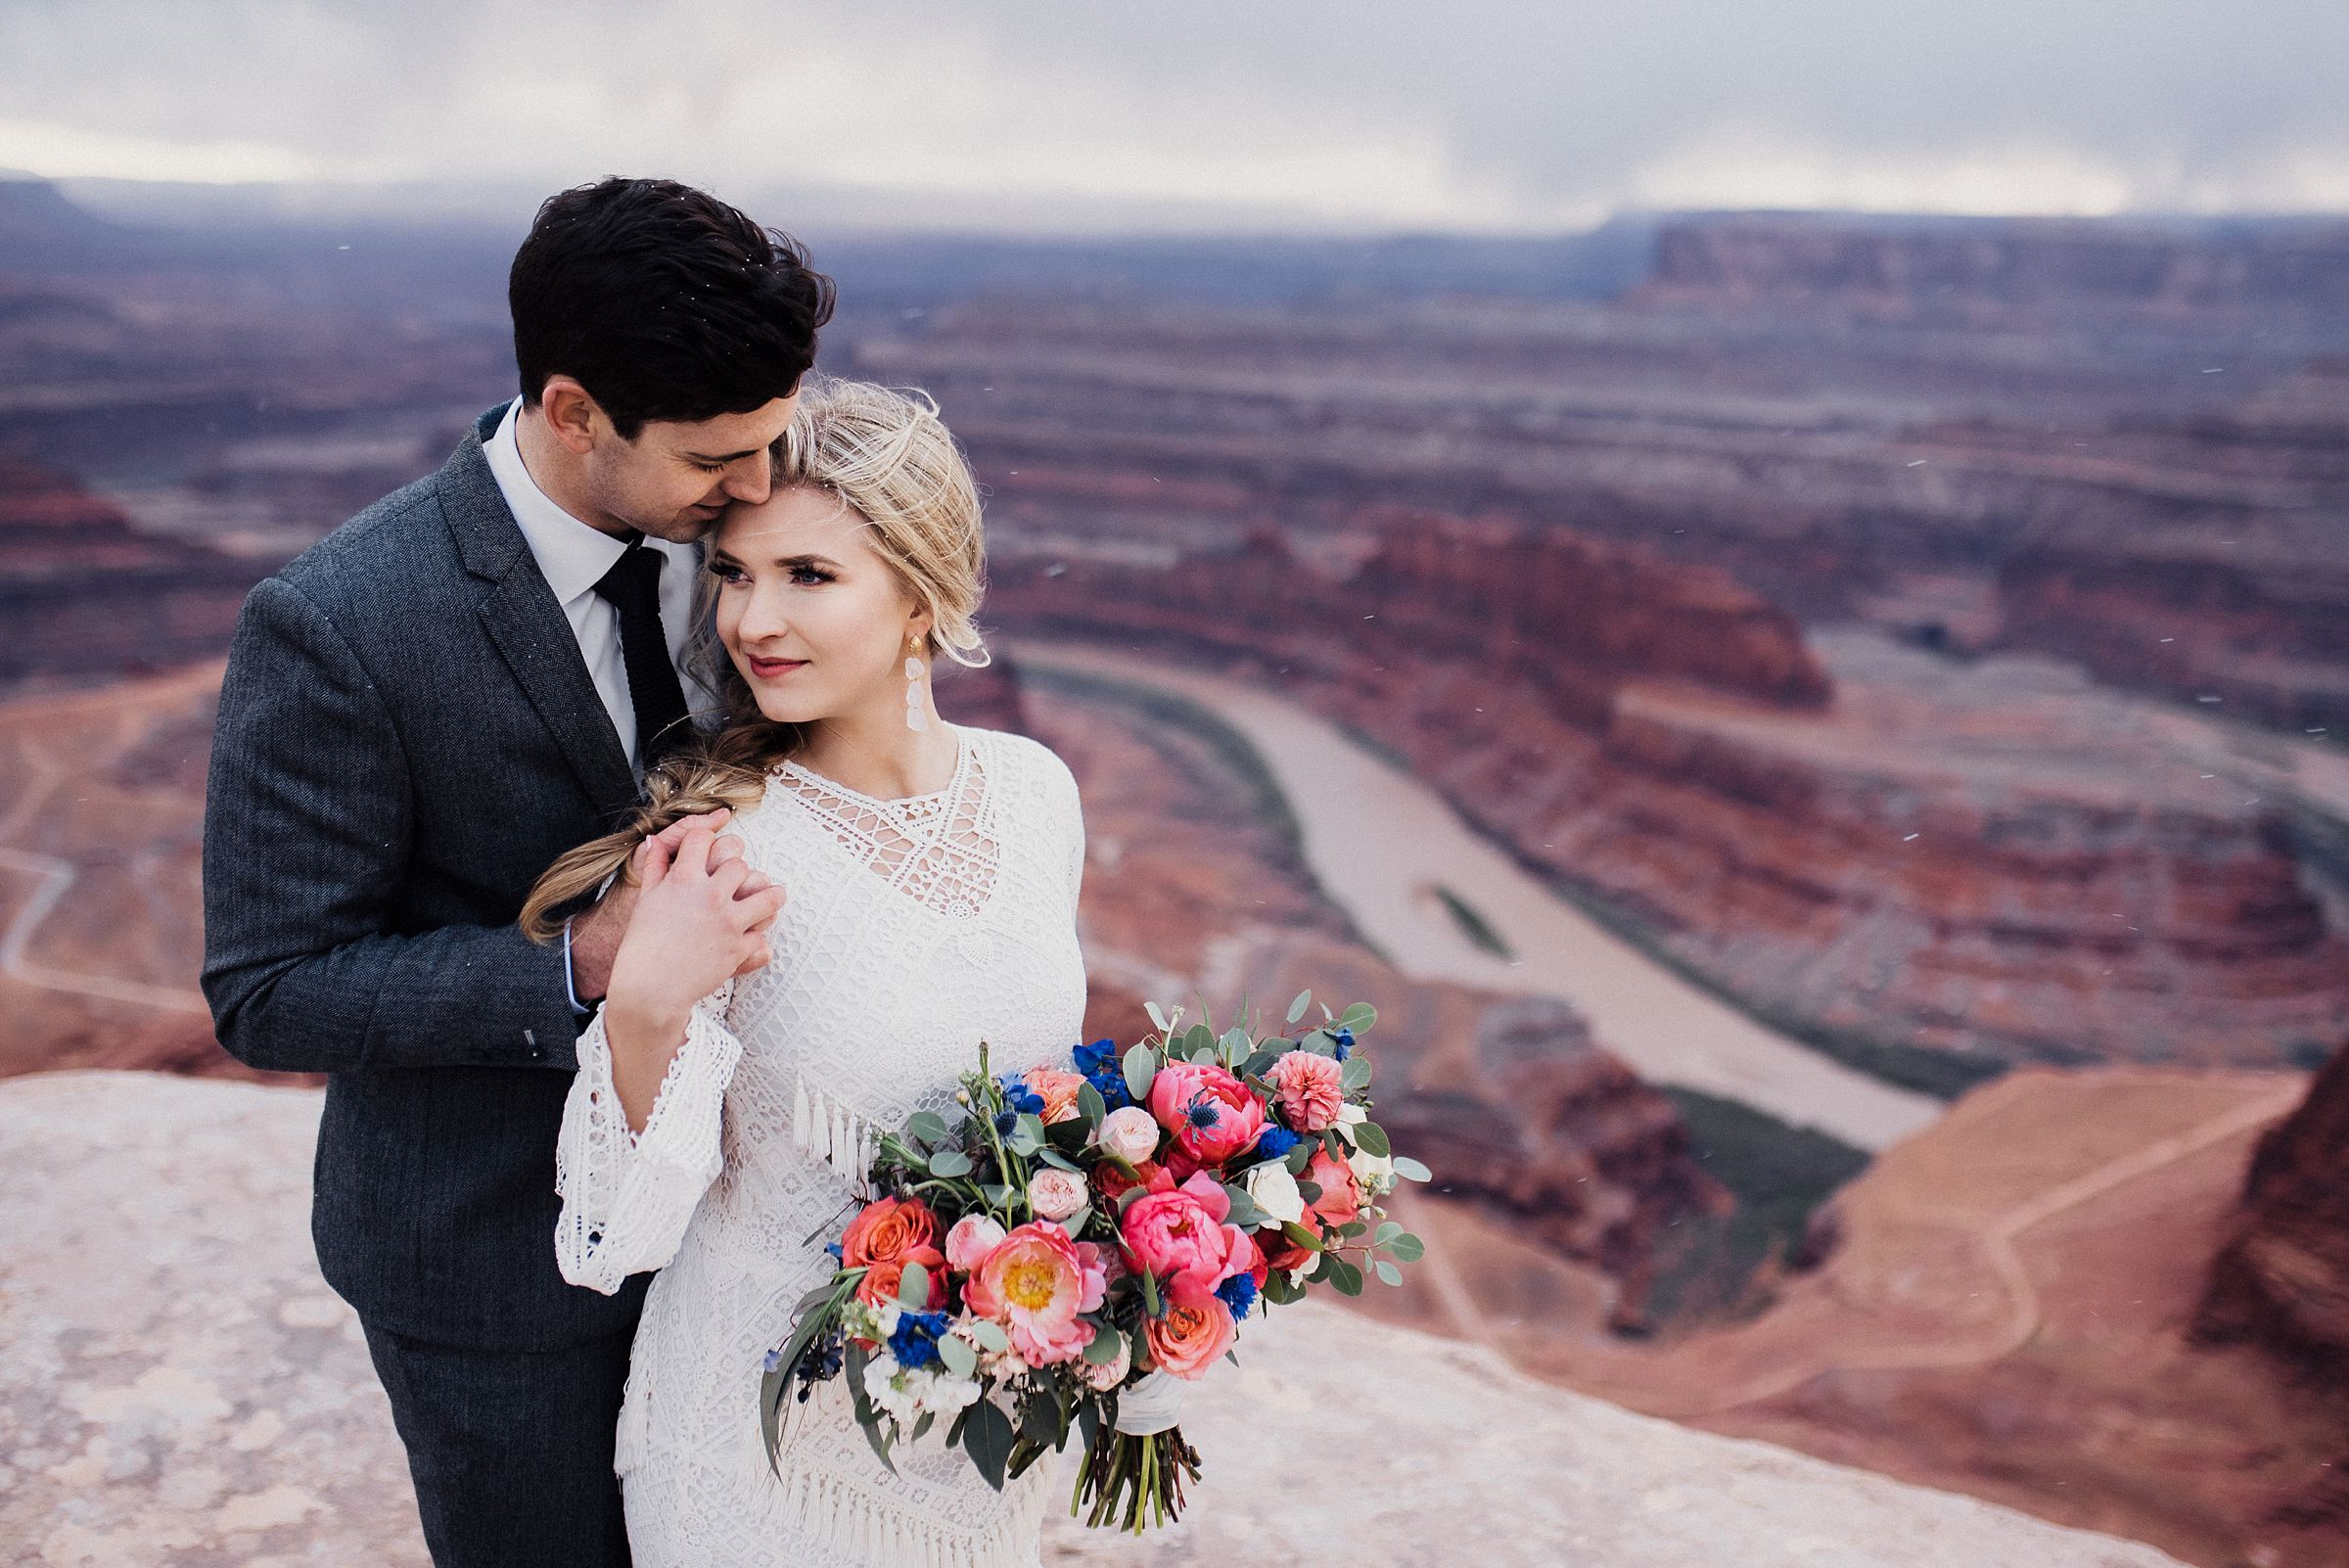 Bridals at Dead Horse Point